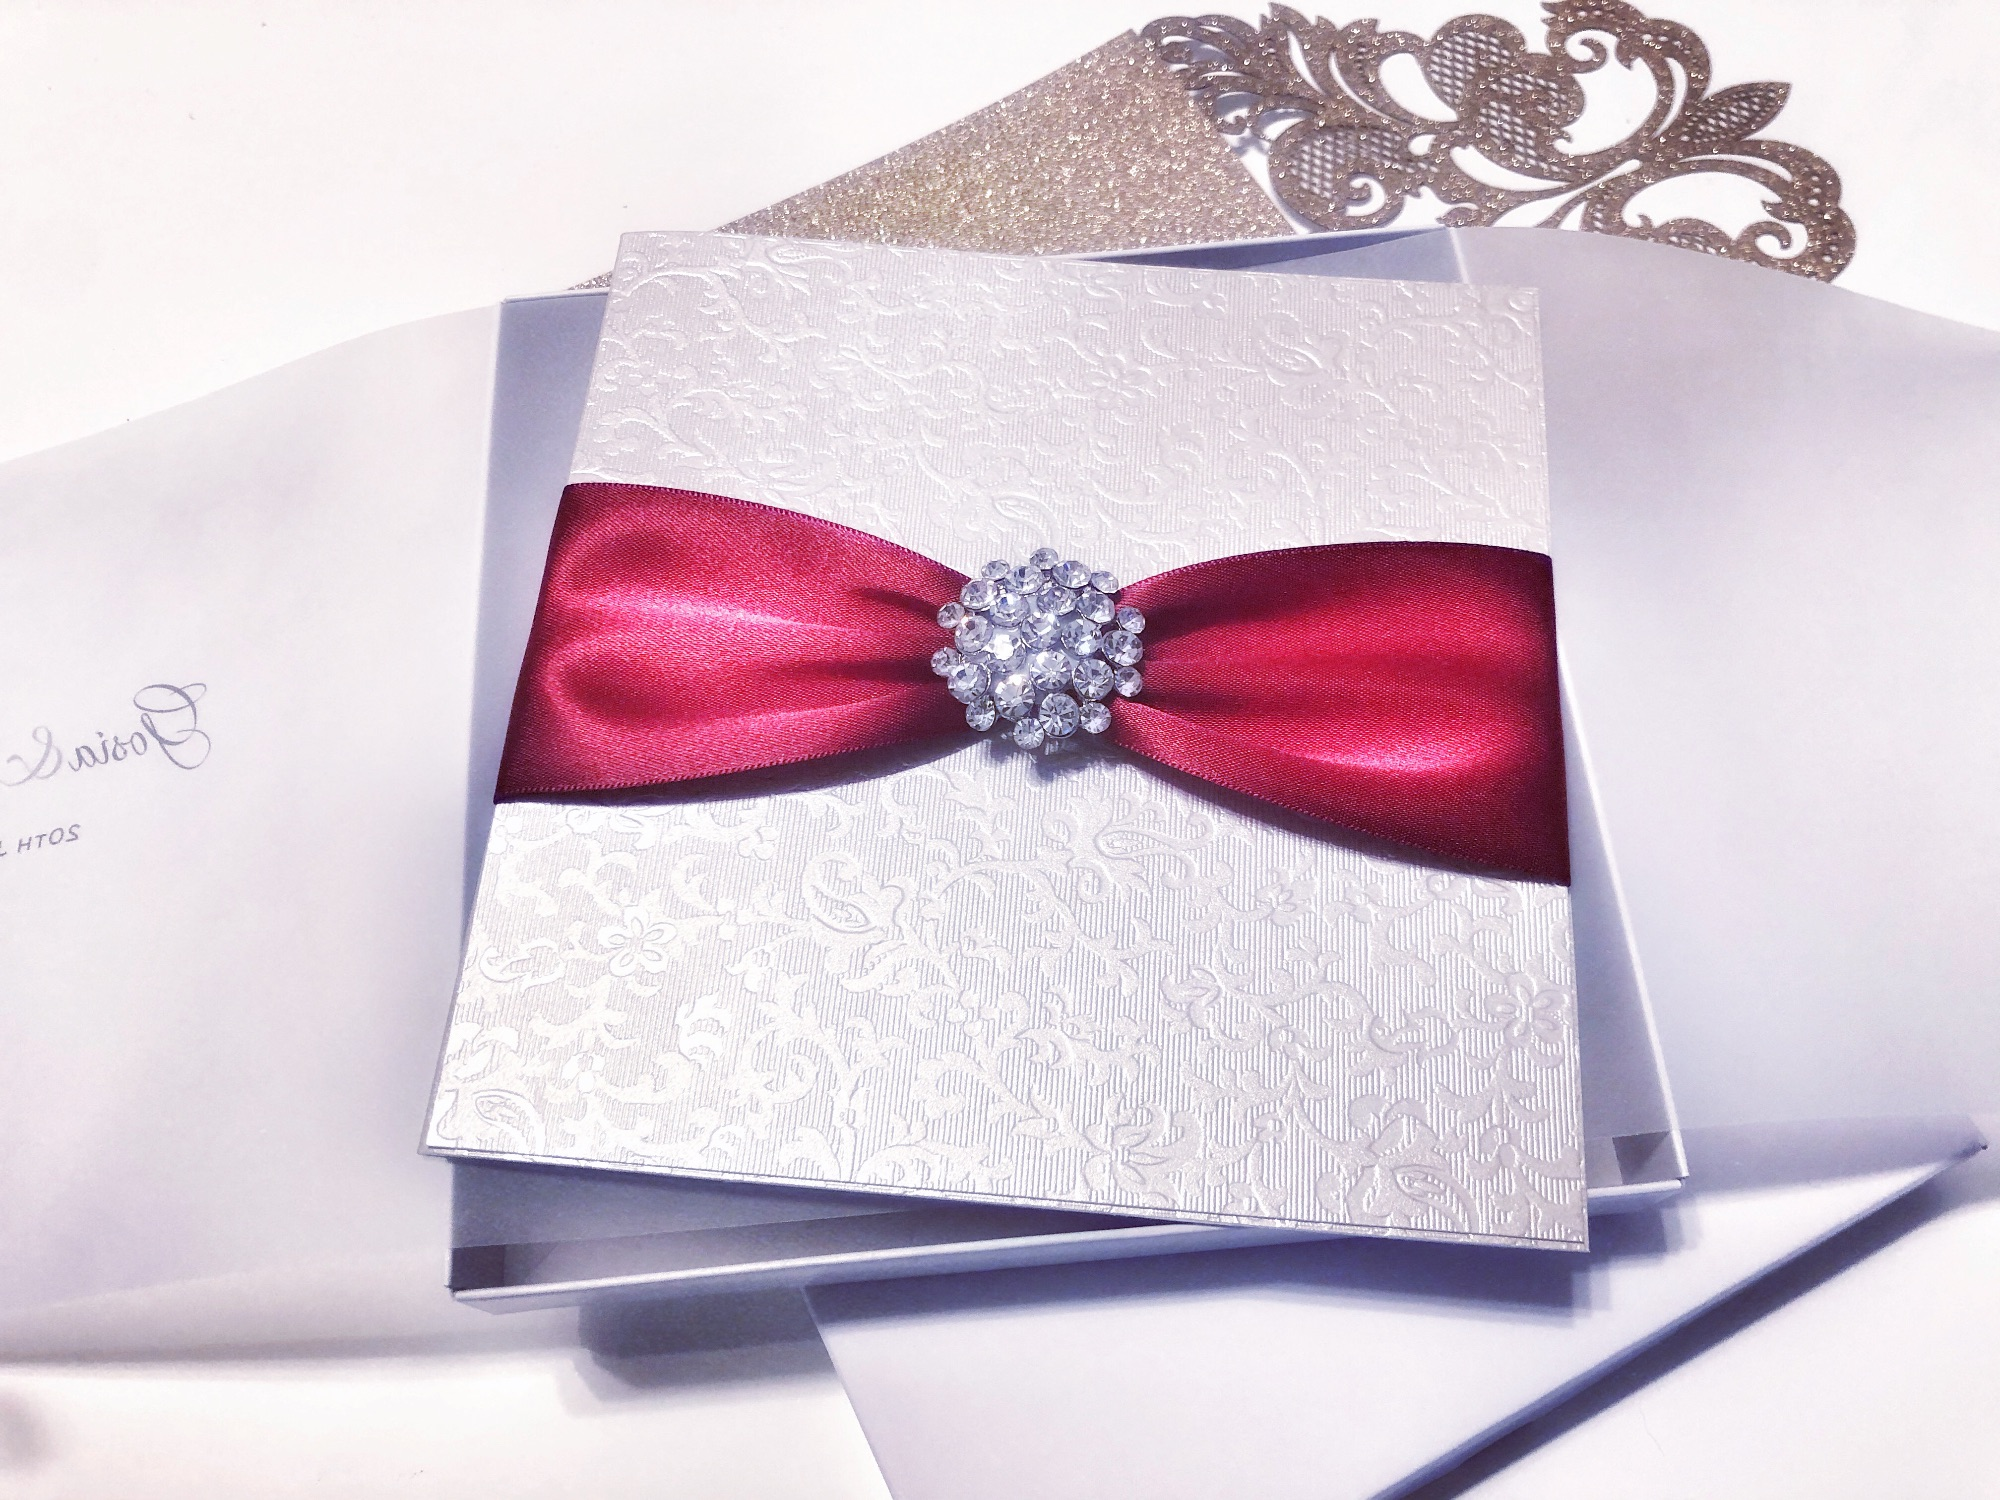 Crystal invitation with red ribbon in box